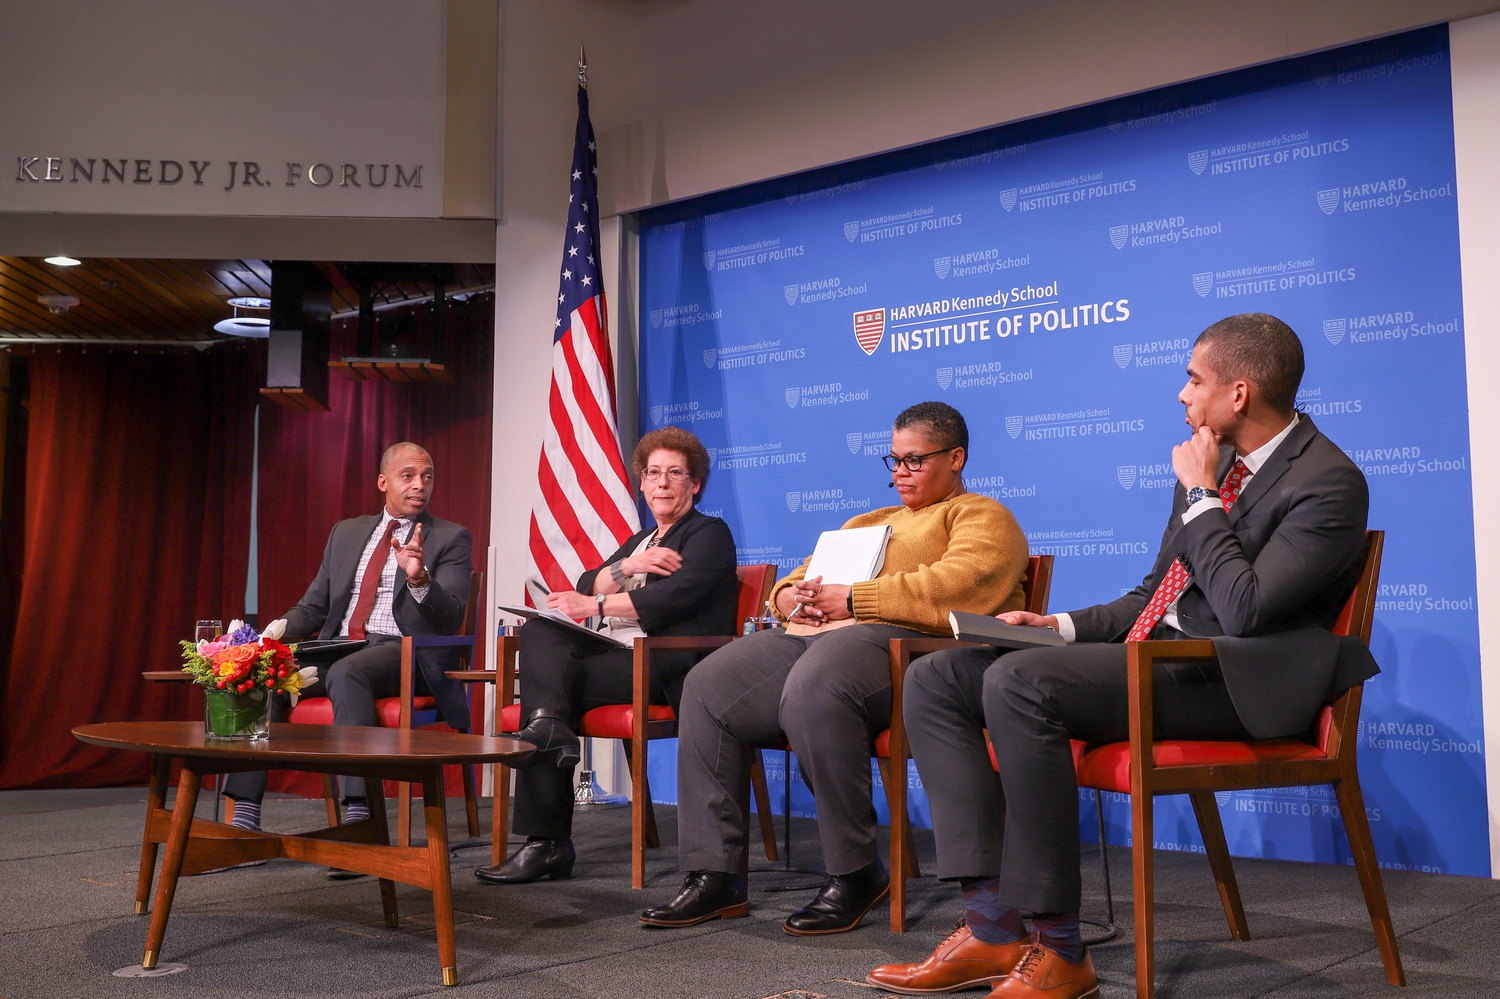 A panel of experts discusses the history and continuing challenges of racism in urban housing at an event at the Institute of Politics Tuesday evening.